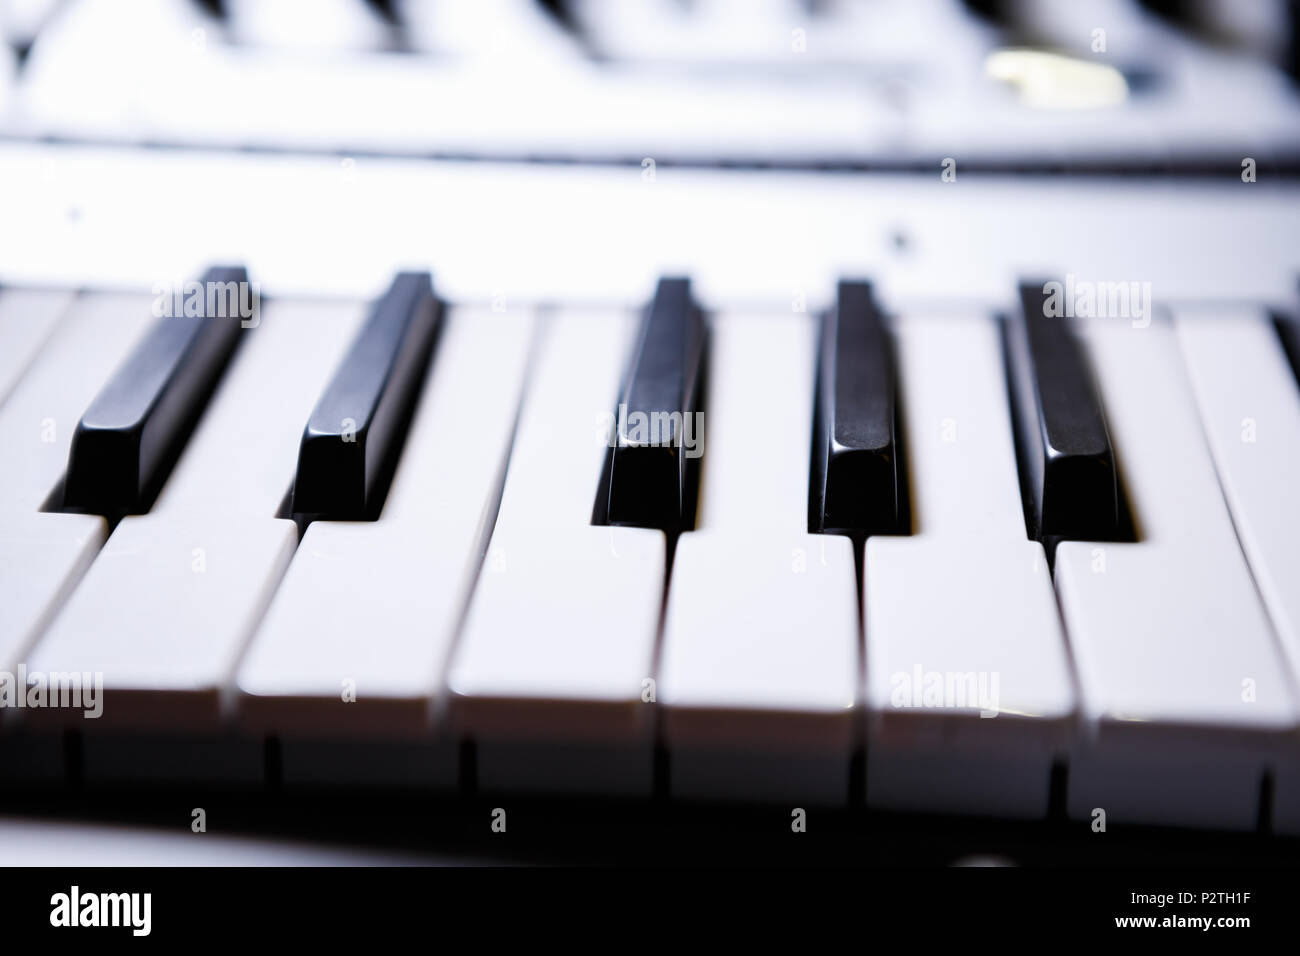 Pianist synthesizer key board.Audio equipment for music production.Sound recording studio device for musician,composer.Professional electronic midi ke - Stock Image